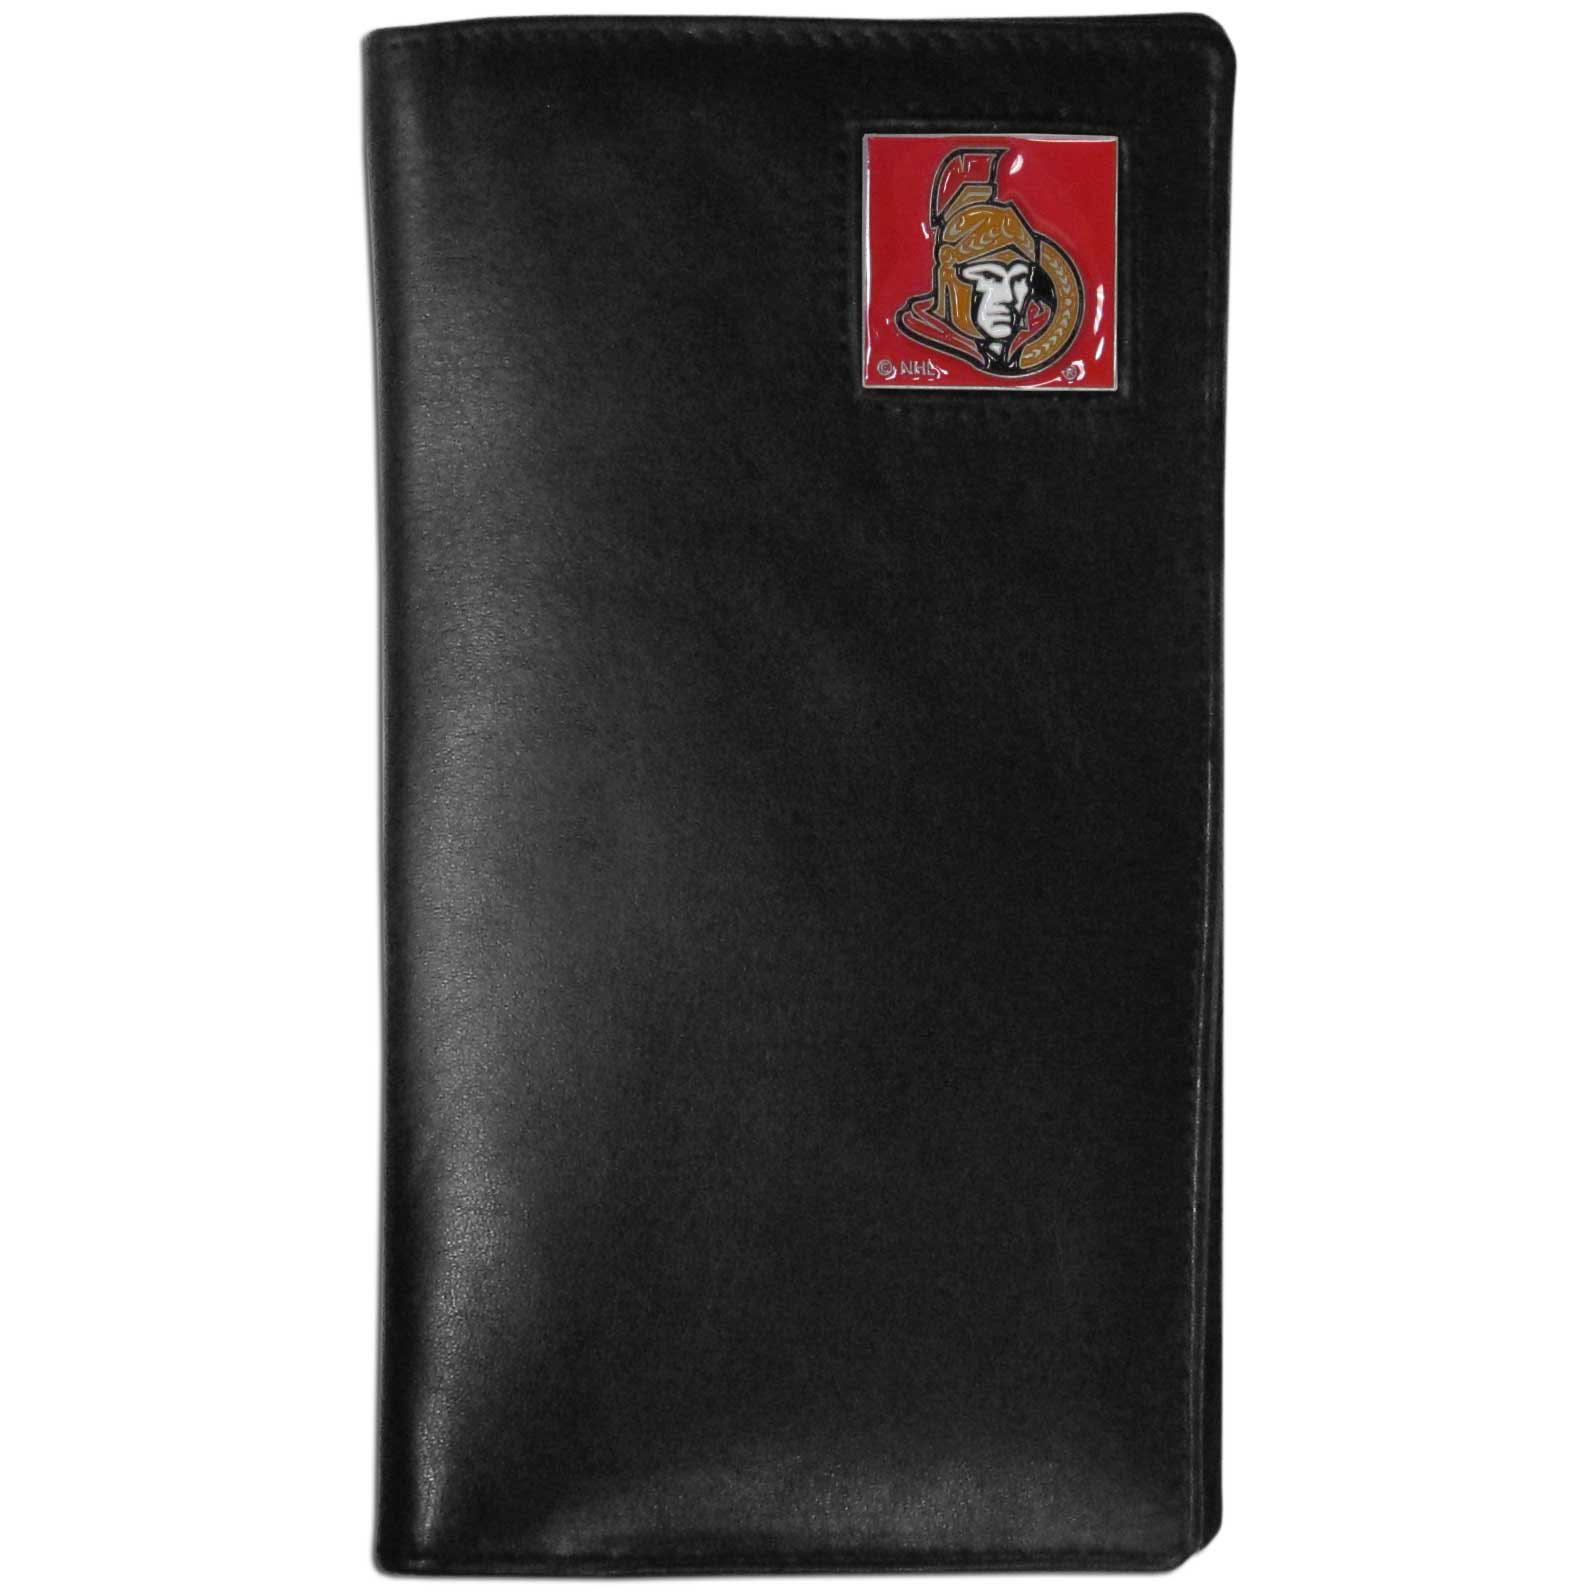 Ottawa Senators Tall Leather Wallet - This officially licensed Ottawa Senators tall leather wallet cover is made of high quality leather with a fully cast metal Ottawa Senators emblem with enameled Ottawa Senators color detail. The cover fits both side and top loaded checks and includes a large zippered pocket, windowed ID slot, numerous credit card slots and billfold pocket.